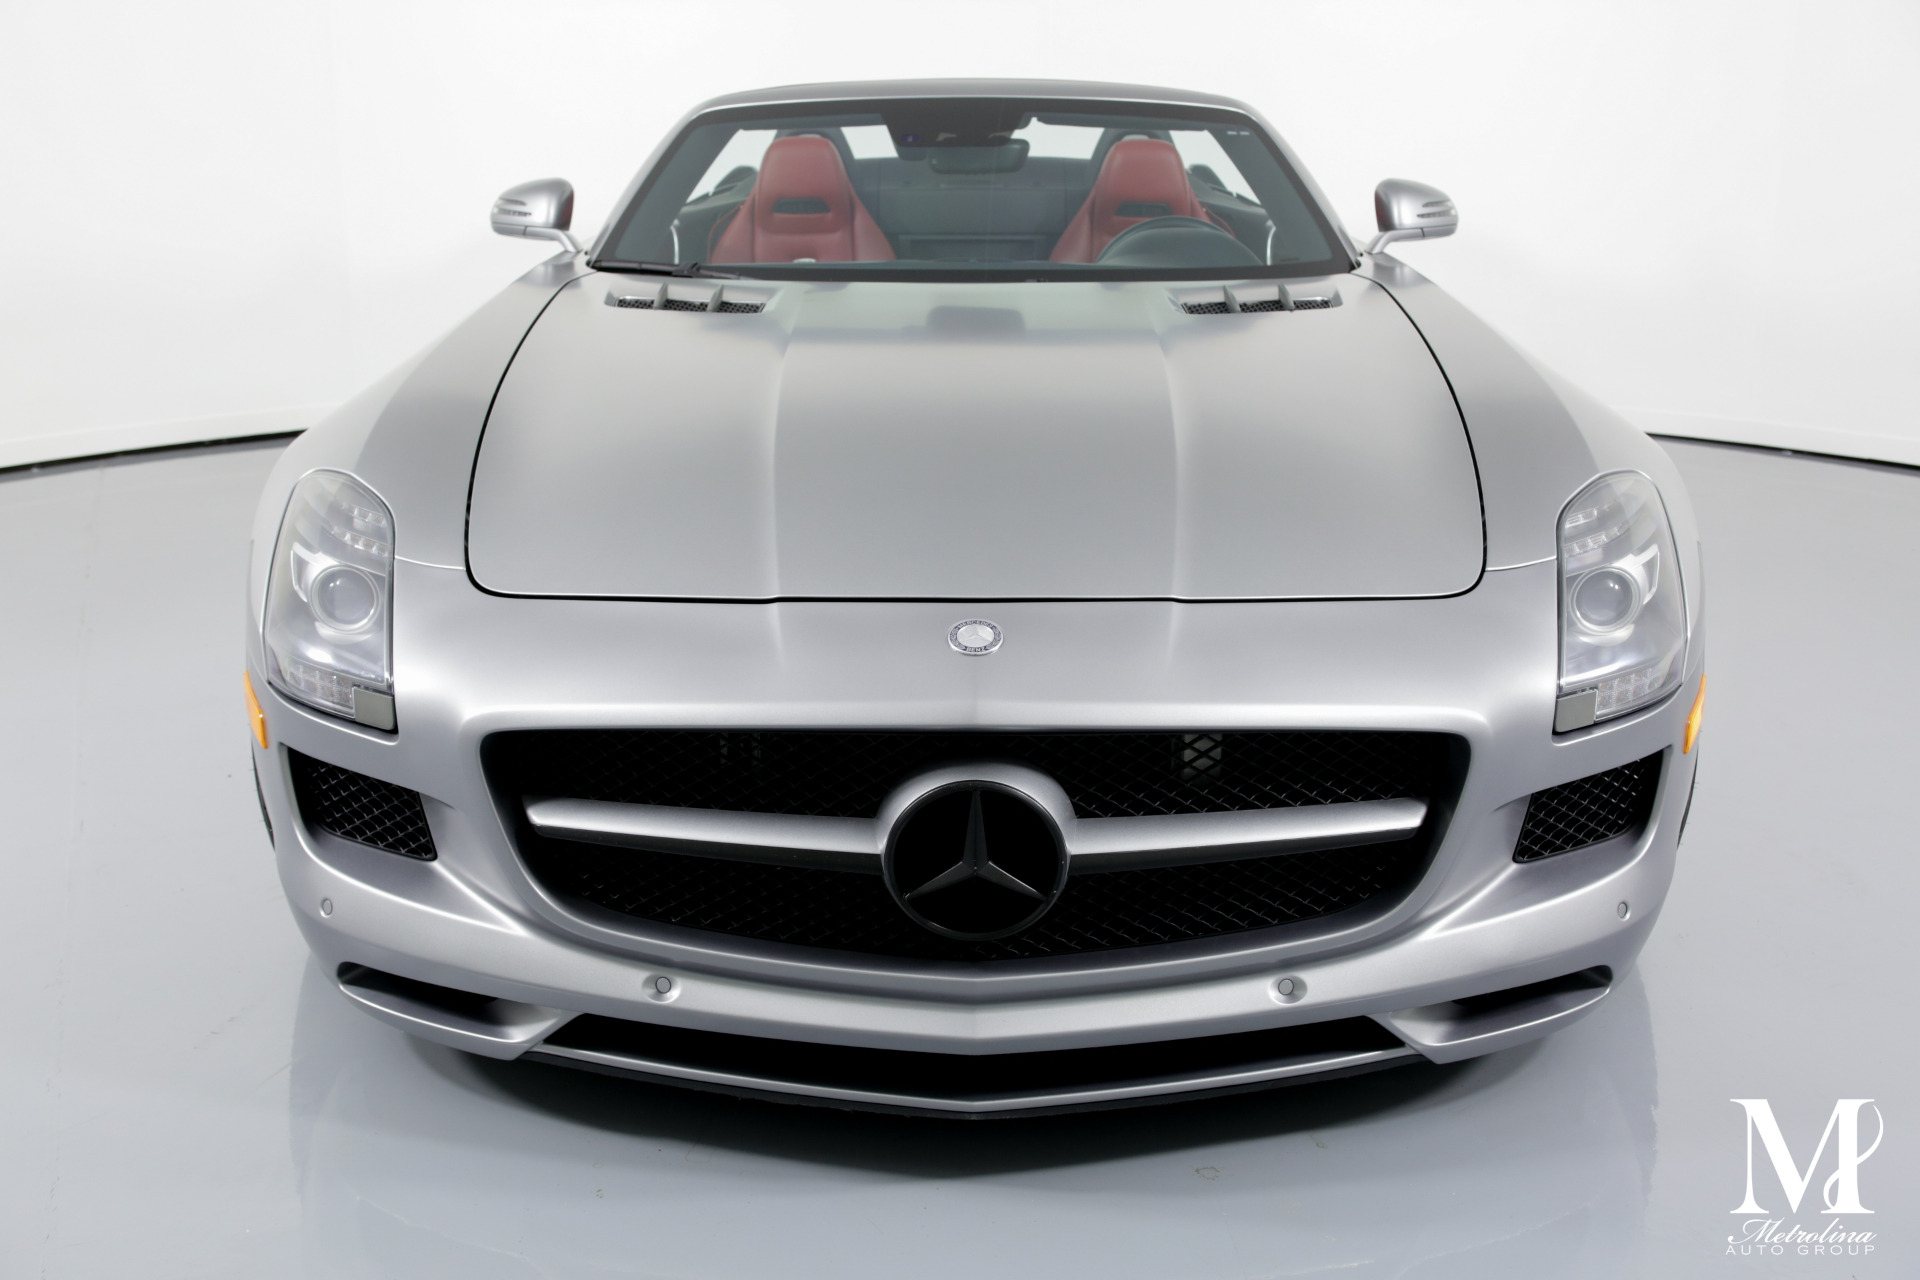 Used 2012 Mercedes-Benz SLS AMG for sale $139,996 at Metrolina Auto Group in Charlotte NC 28217 - 4